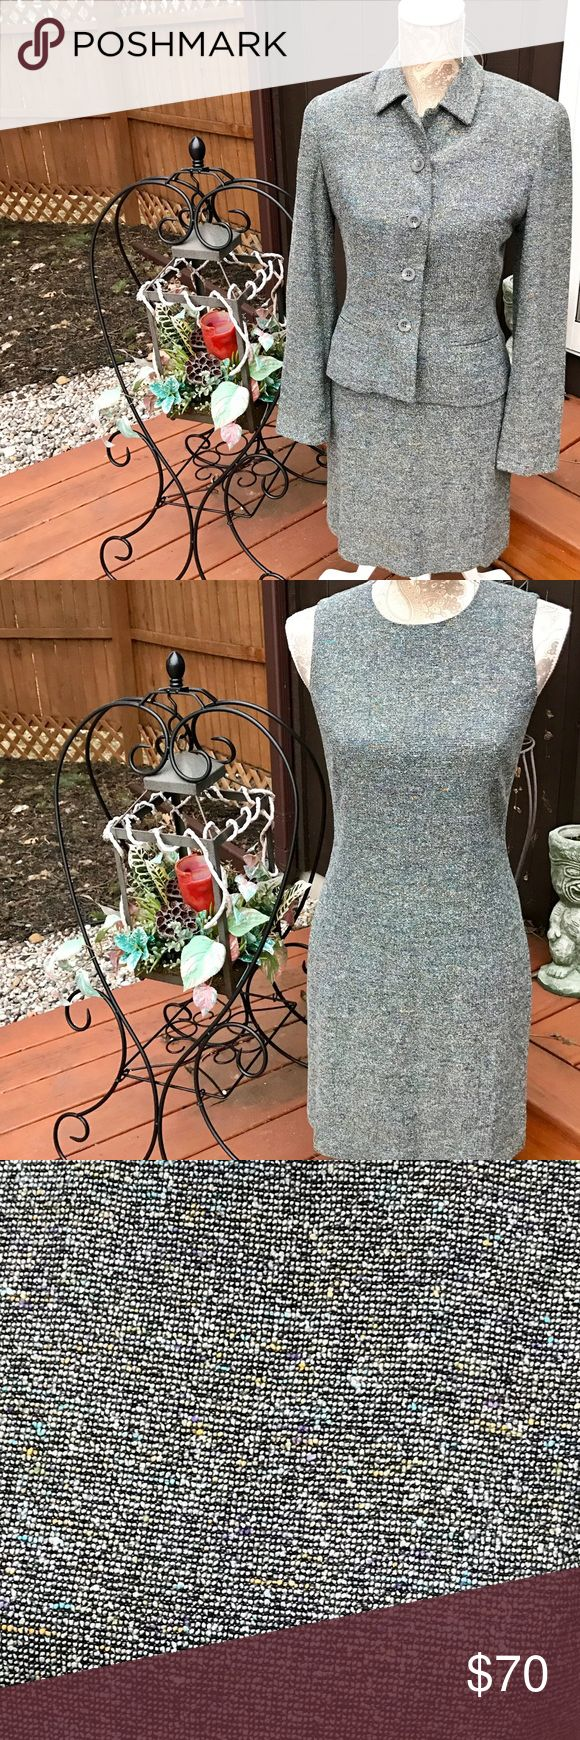 VTG NEIMAN MARCUS ISABEL ARDEE DRESS/JACKET SIZE 4 BEAUTIFUL VINTAGE NEIMAN MARCUS ISABEL ARDEE SHEATH DRESS WITH MATCHING JACKET TWEED GRAY & MULTICOLORED WITH BLUES, YELLOWS, WHITE.  THE SIZE IS 4. EXCELLENT CONDITION! Neiman Marcus Other